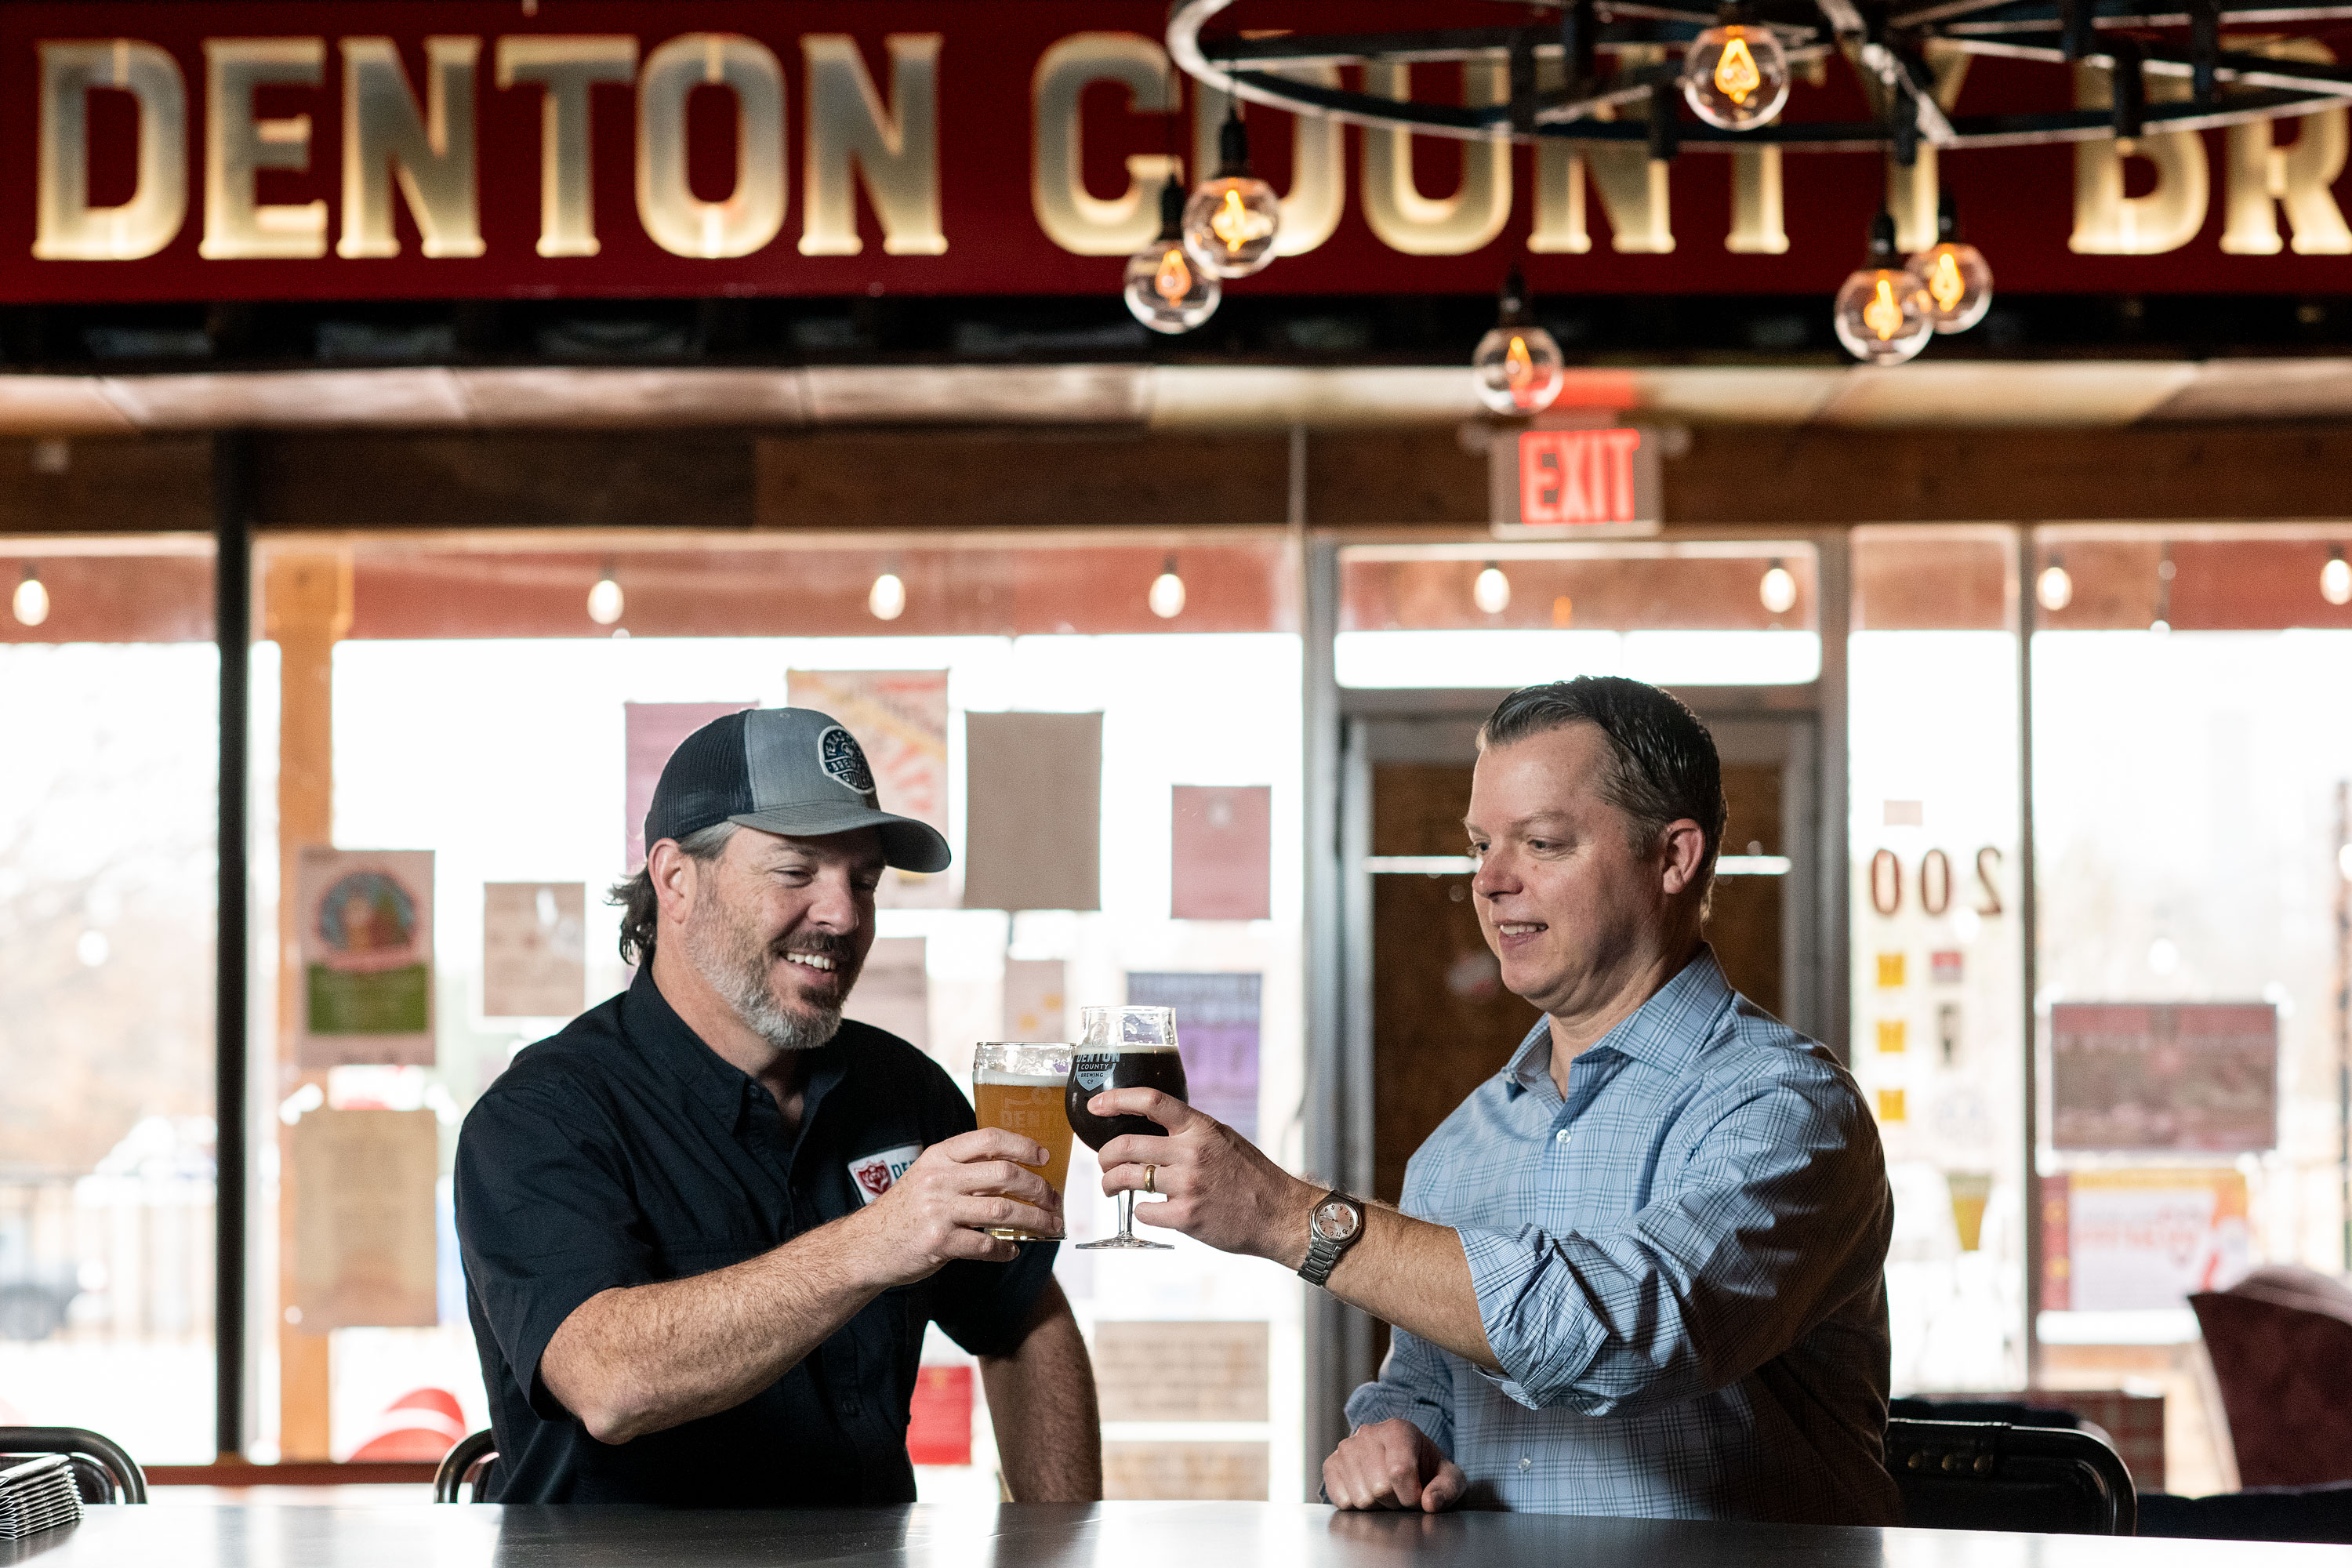 Seth Morgan and Mike Barnett inside Denton County Brewing Co.